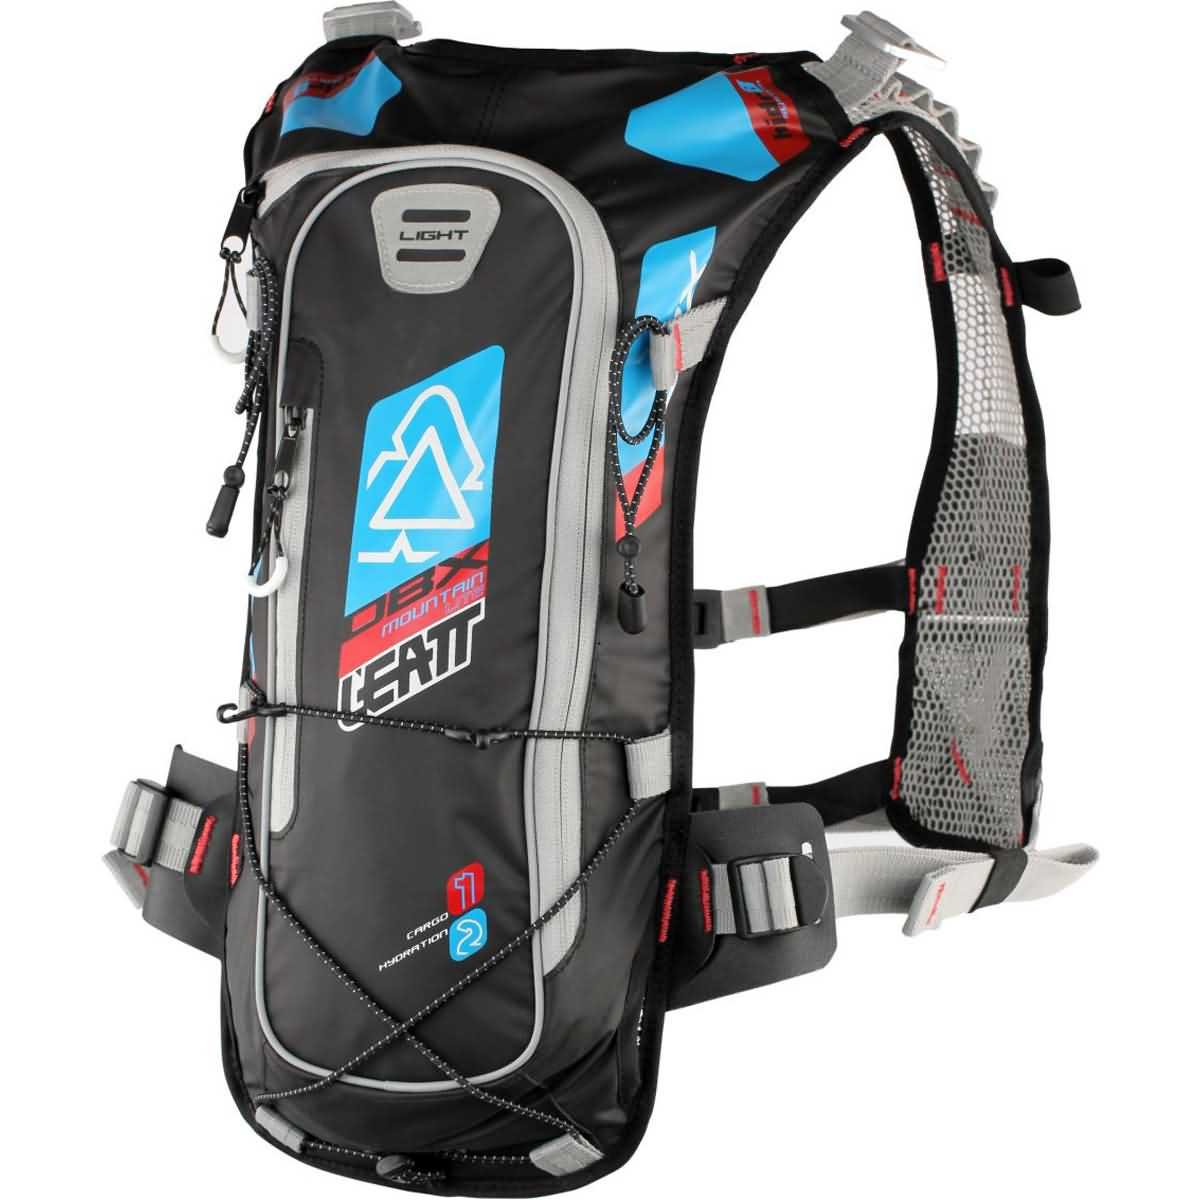 Leatt DBX 2.0 Mountain Lite Hydration Pack-Blue/Red/Black by Leatt Brace